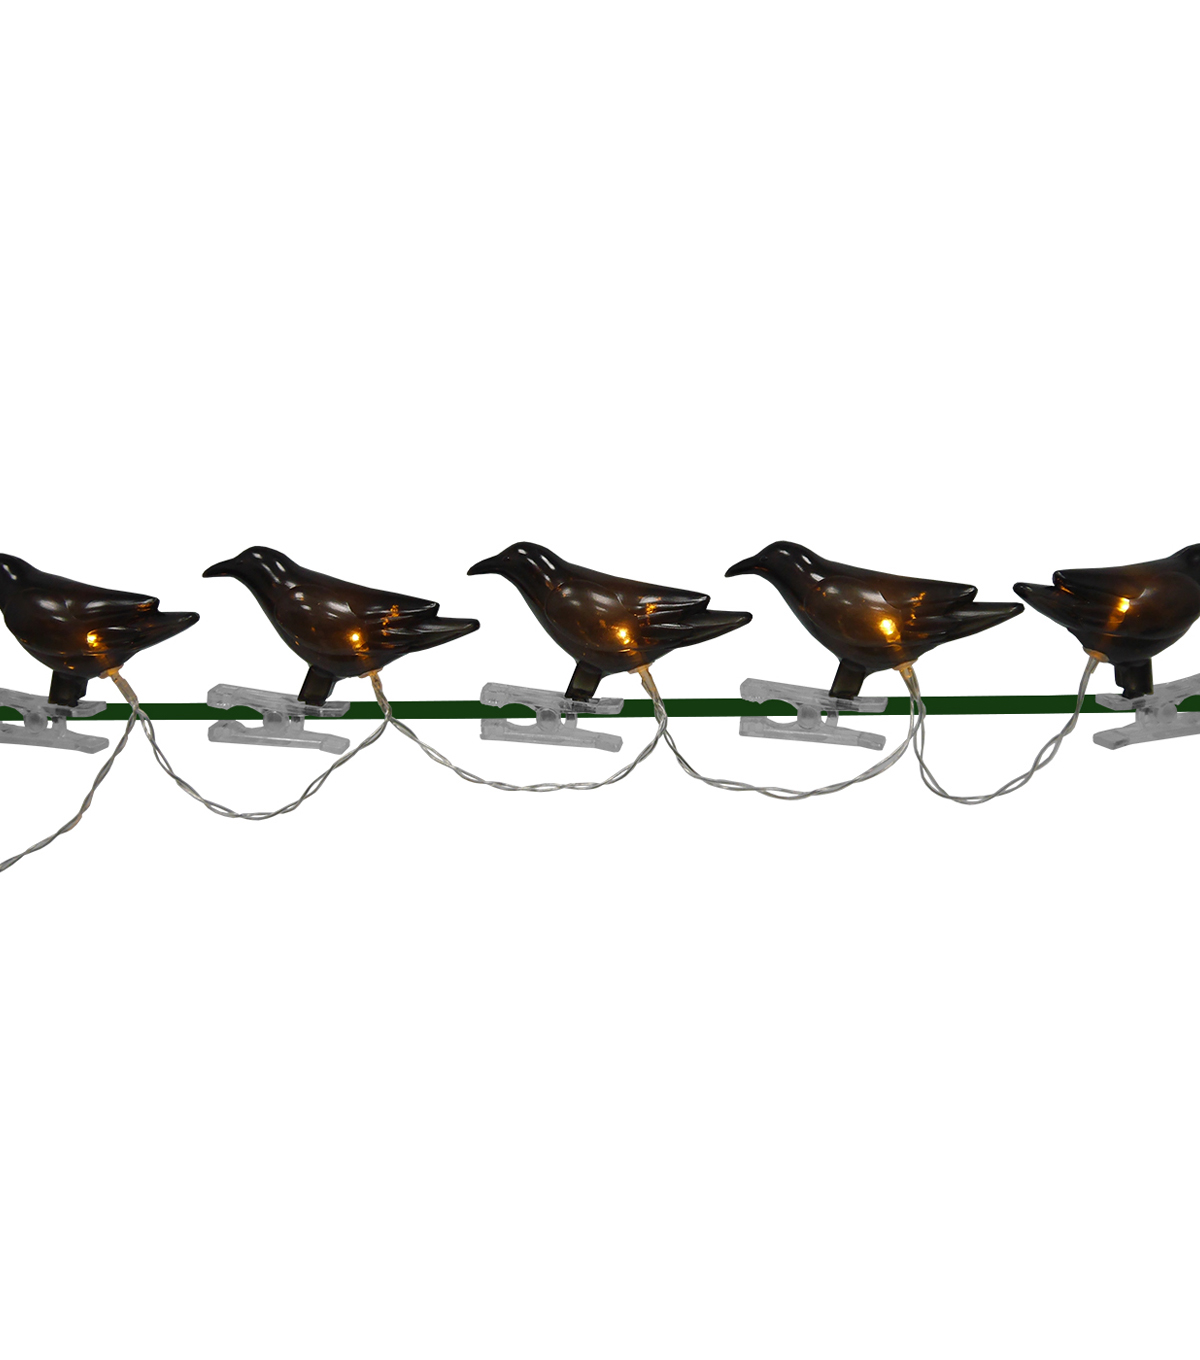 Maker\u0027s Halloween 10 Count 78\u0027\u0027 Plastic Crow String Lights